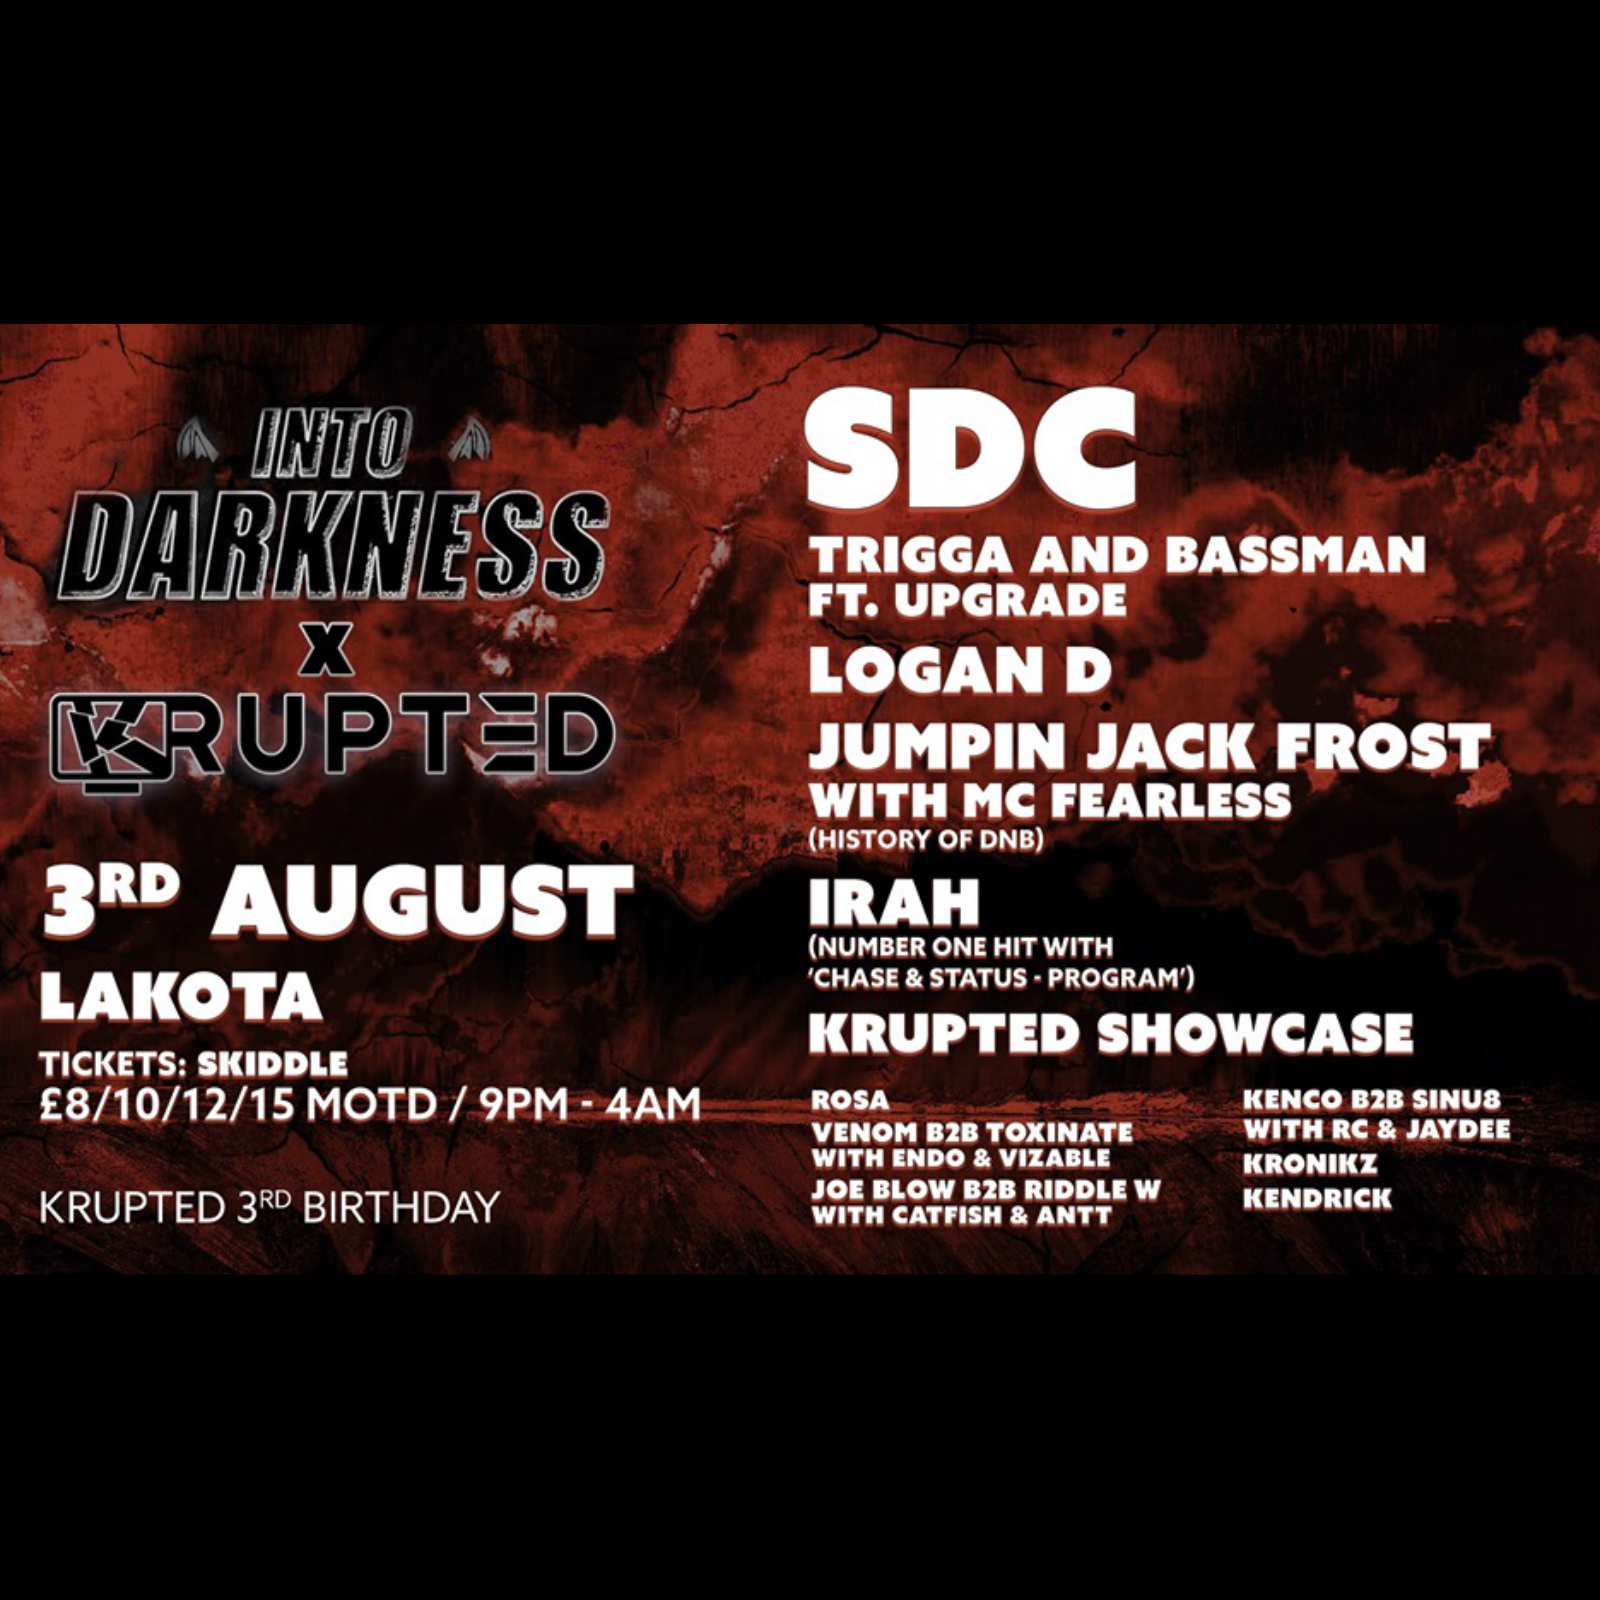 Into Darkness x Krupted 3rd Birthday